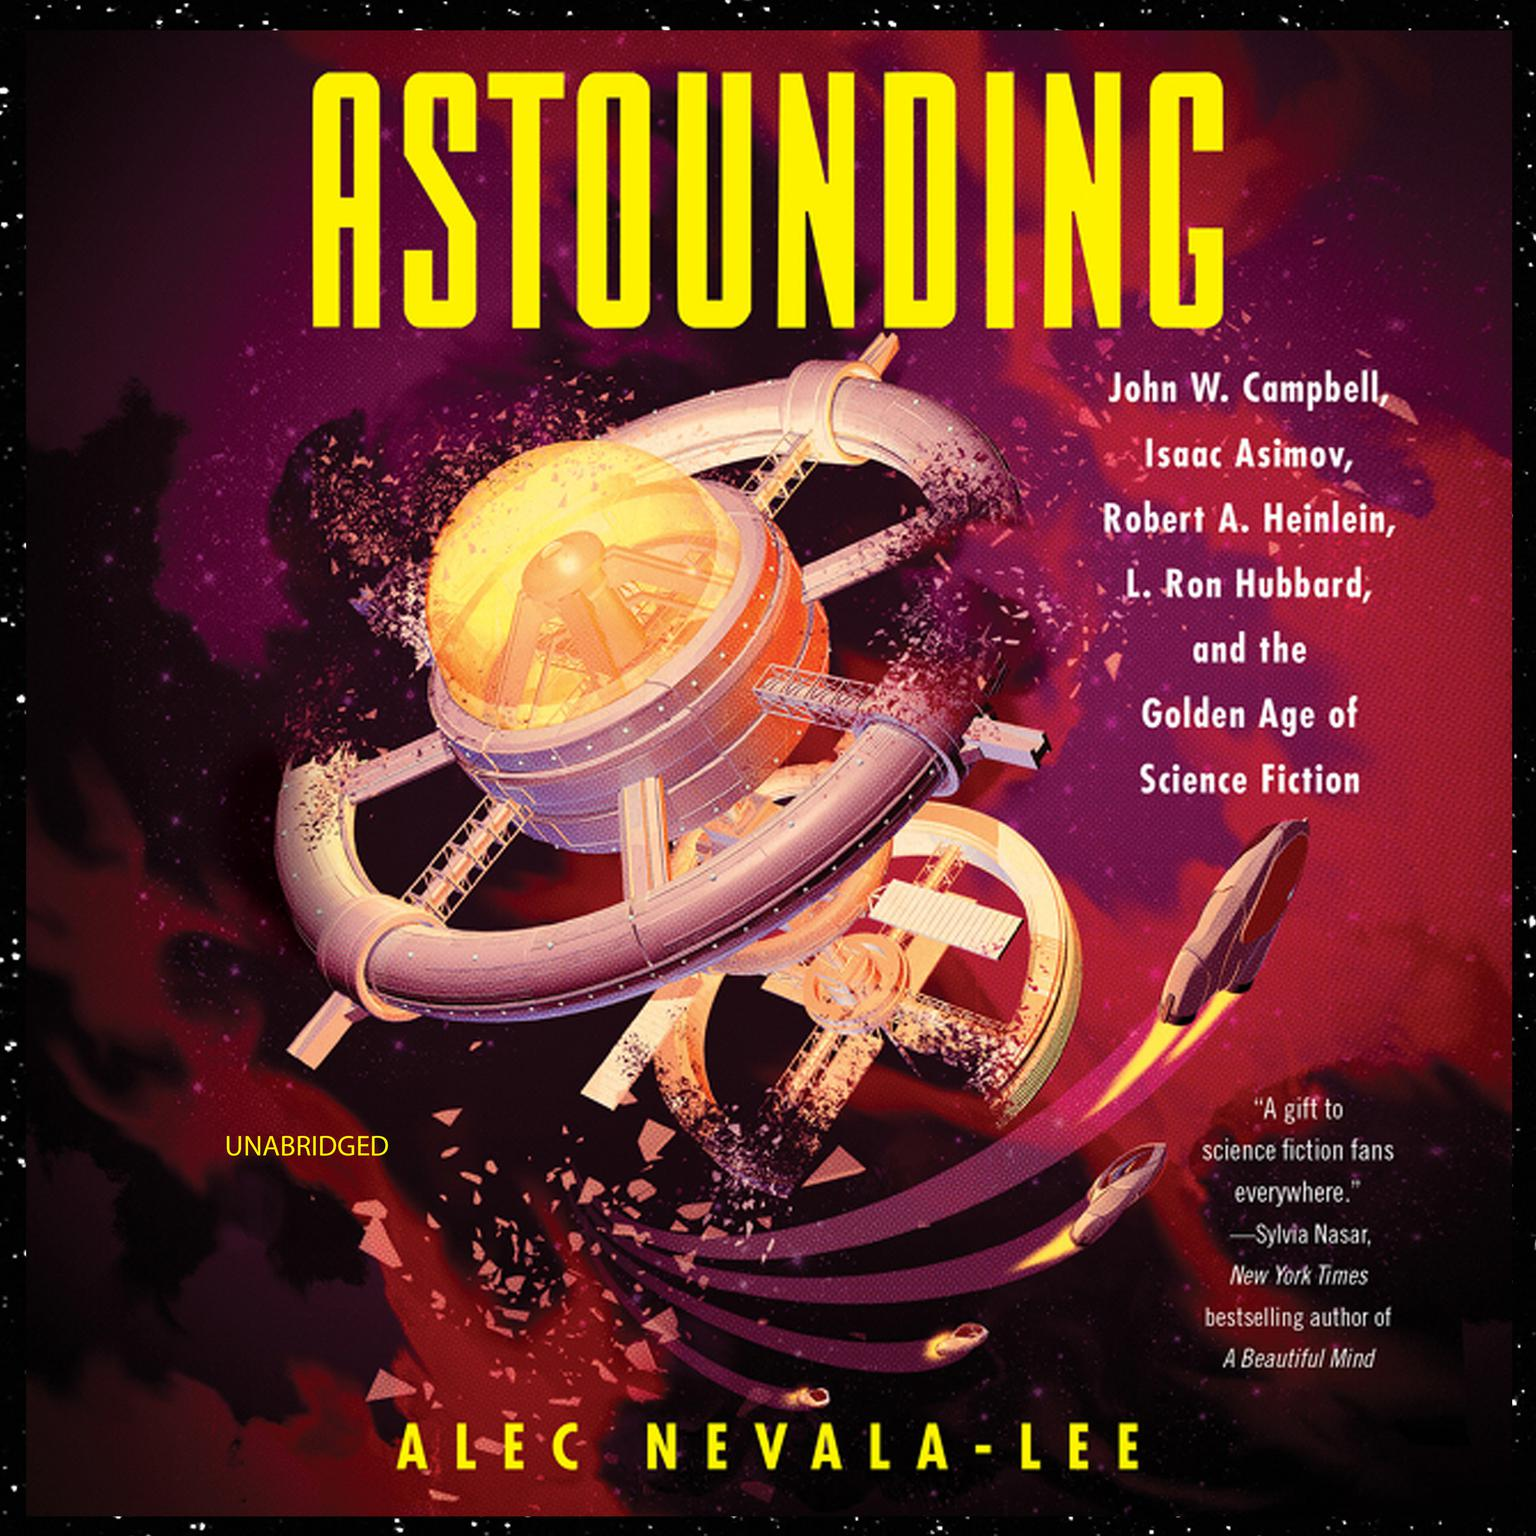 Printable Astounding: John W. Campbell, Isaac Asimov, Robert A. Heinlen, L. Ron Hubbard, and the Golden Age of Science Fiction Audiobook Cover Art